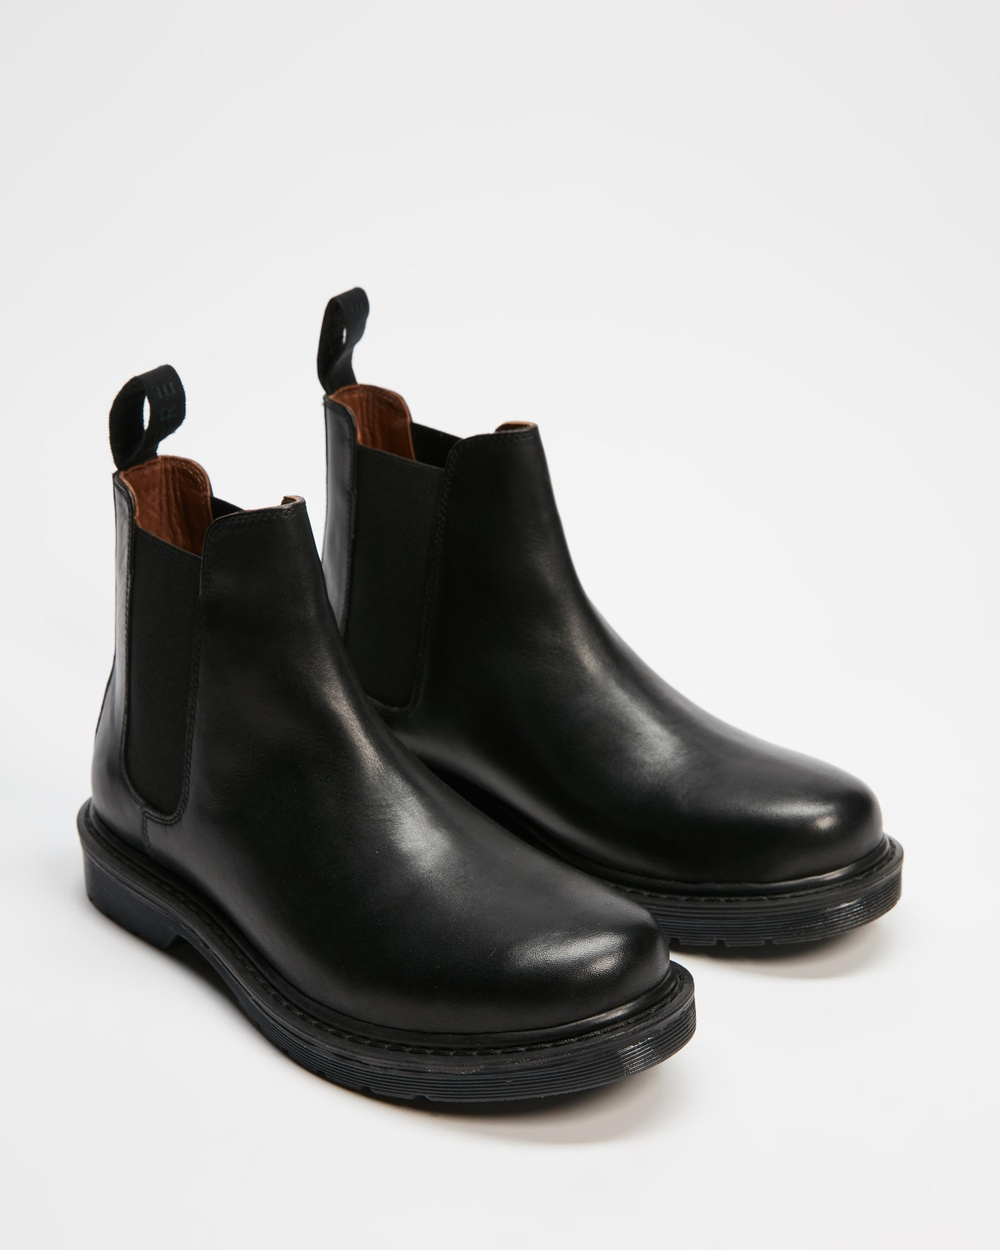 AERE Smooth Leather Chelsea Boots Black